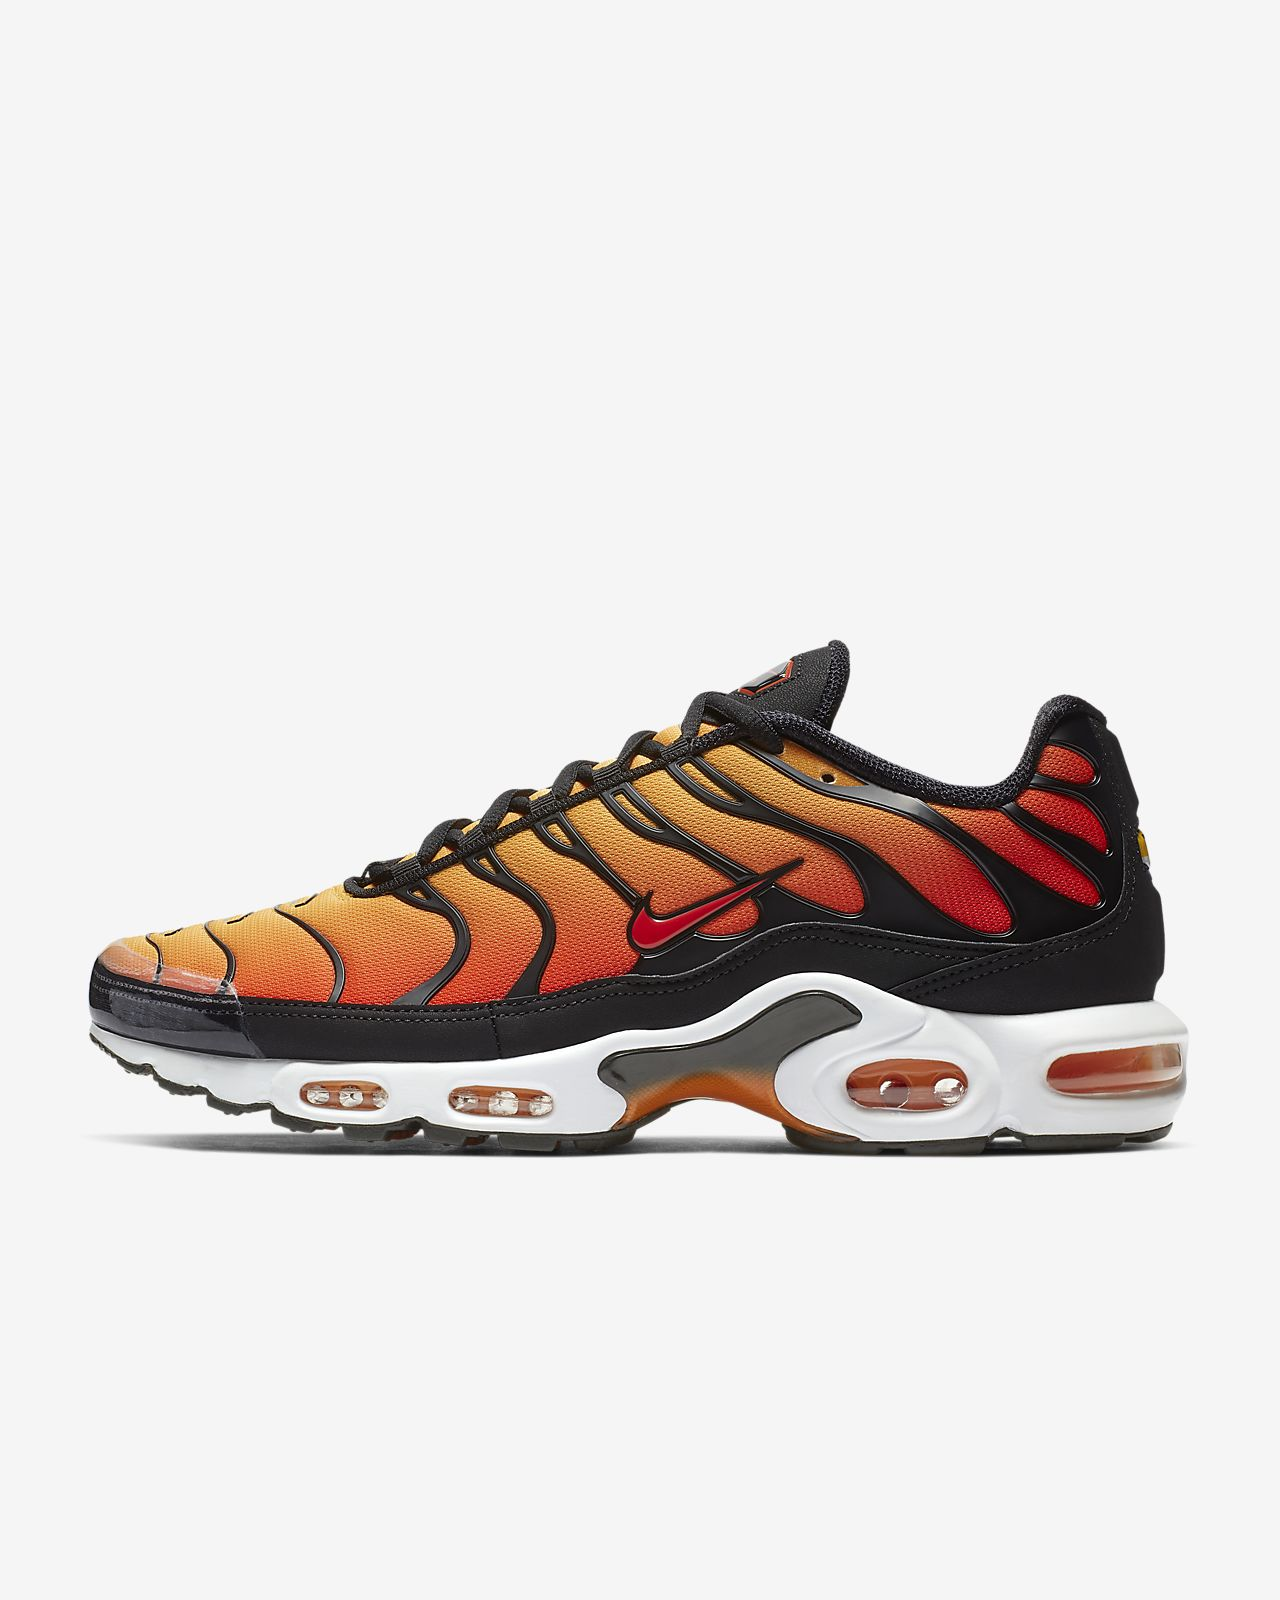 Calzado Nike Air Max Plus OG